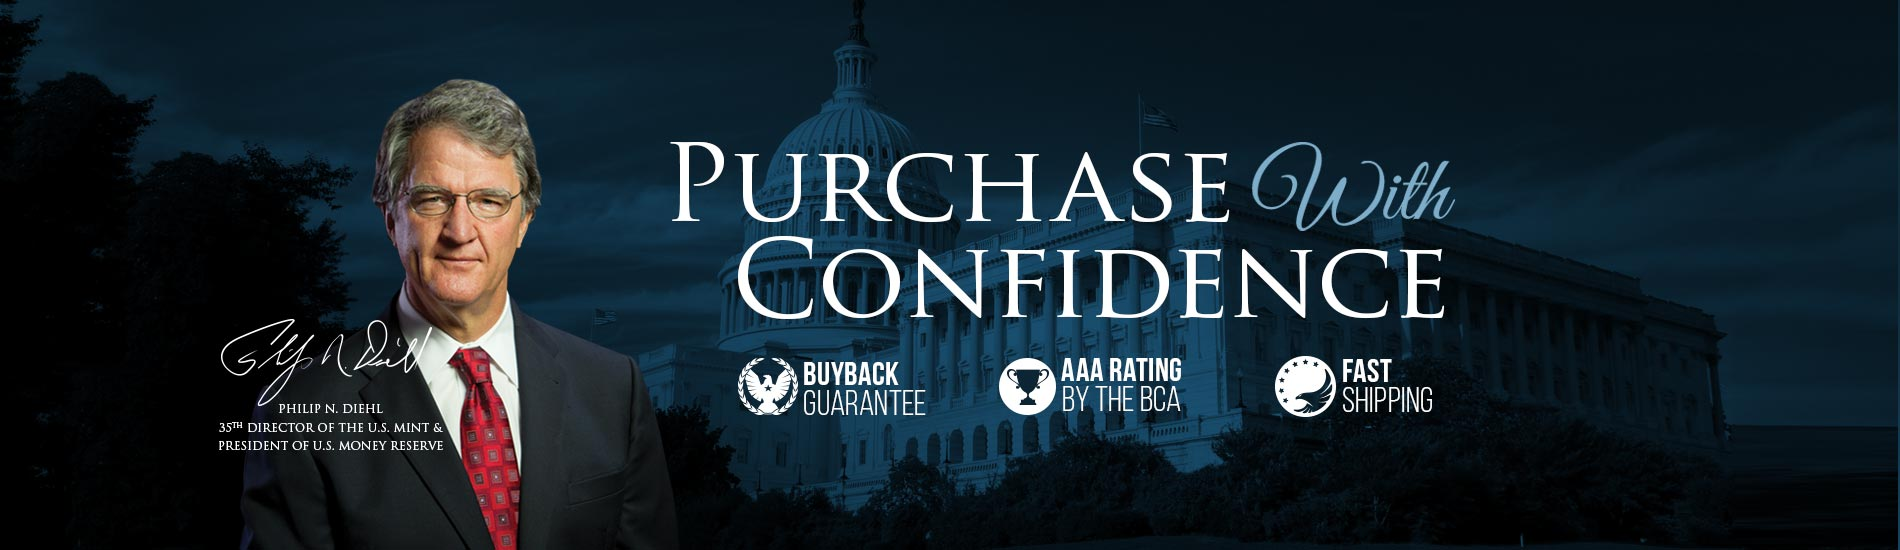 Purchase with confidence